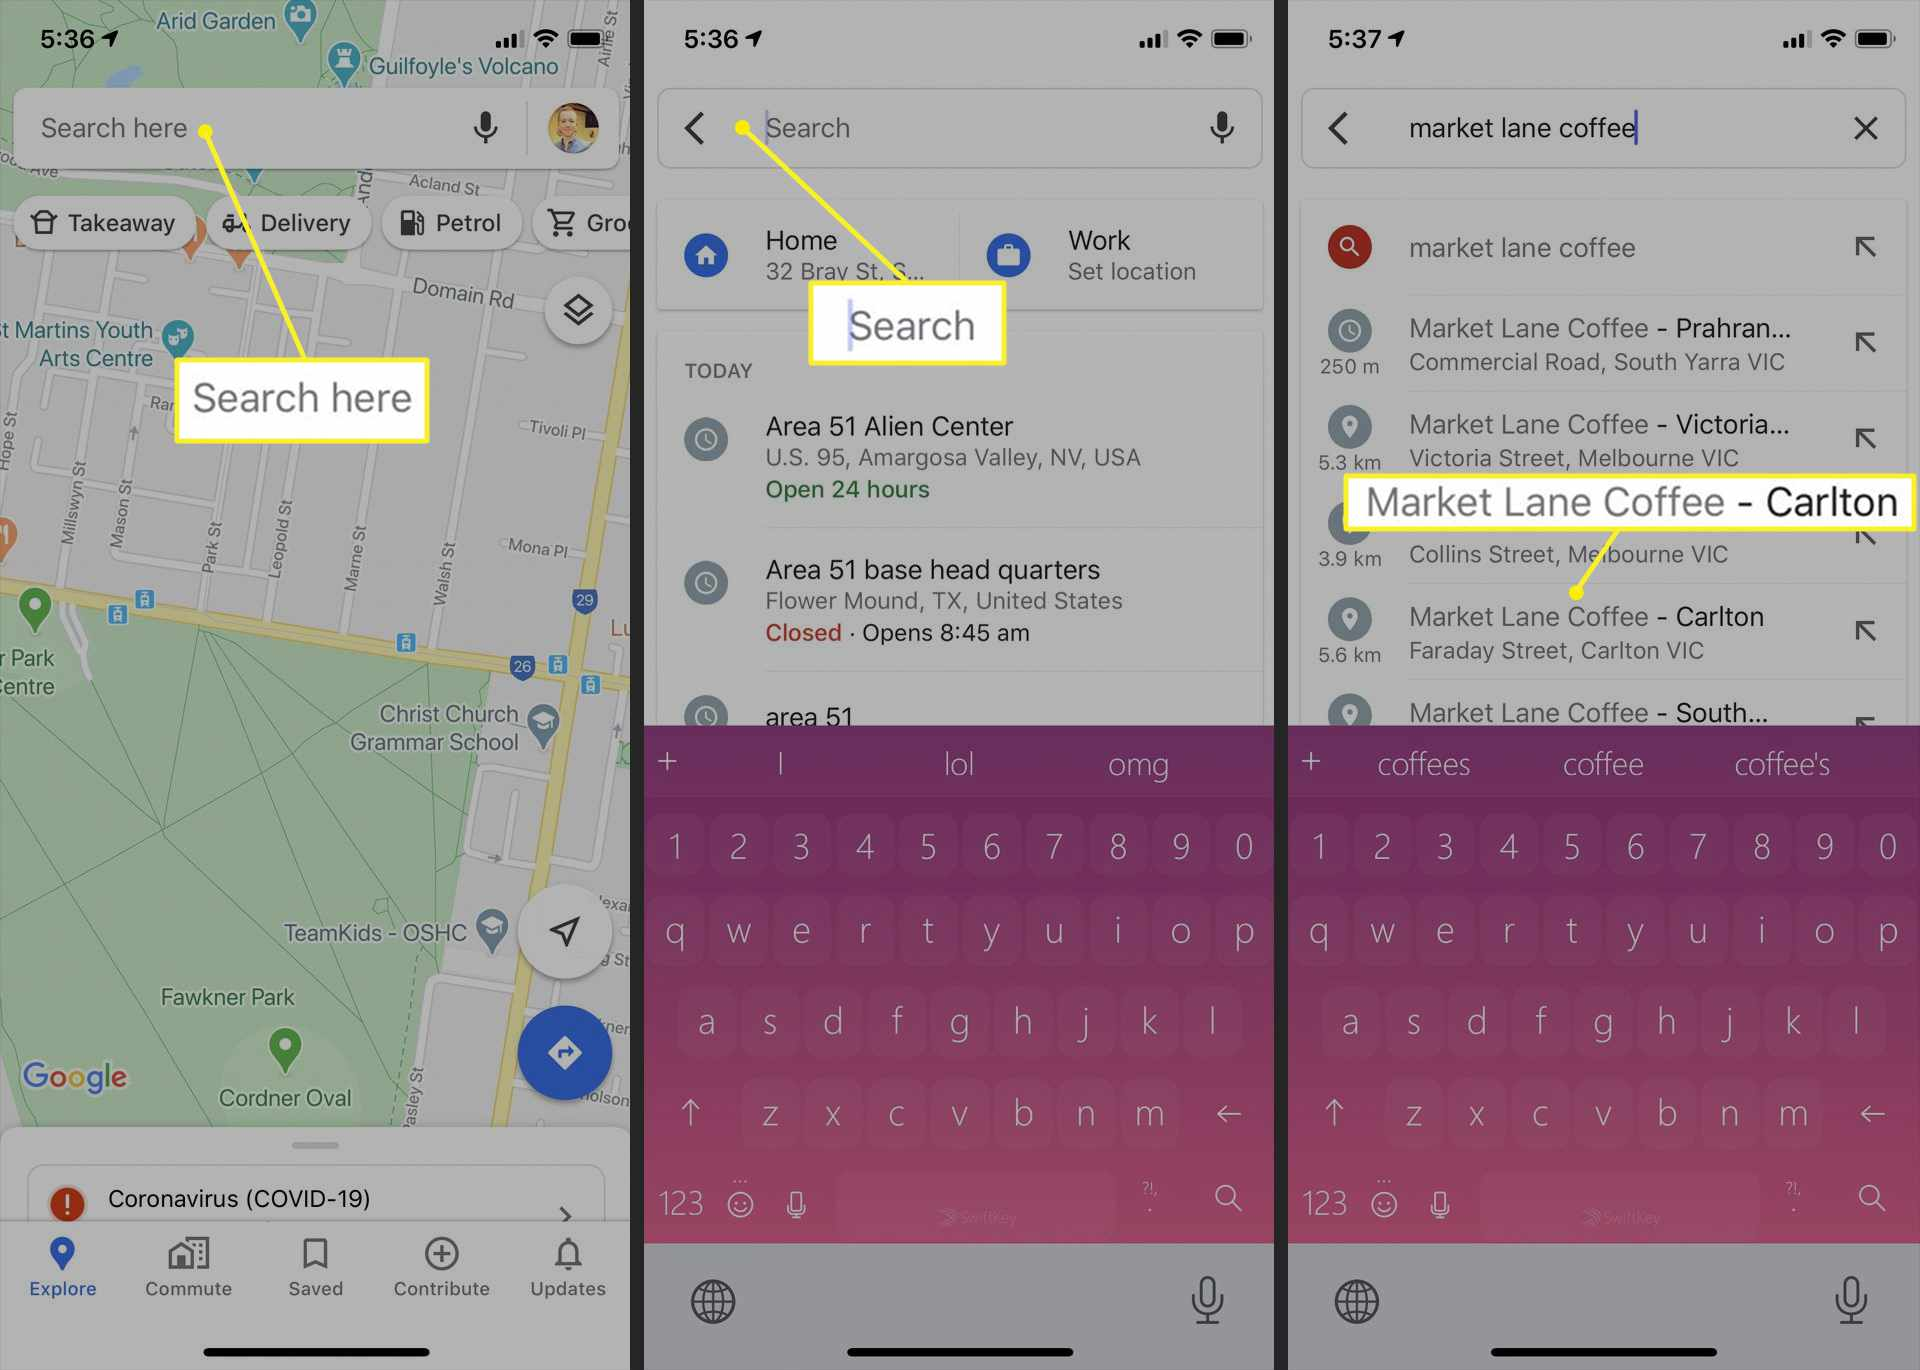 Google Maps app on iPhone showing location search path